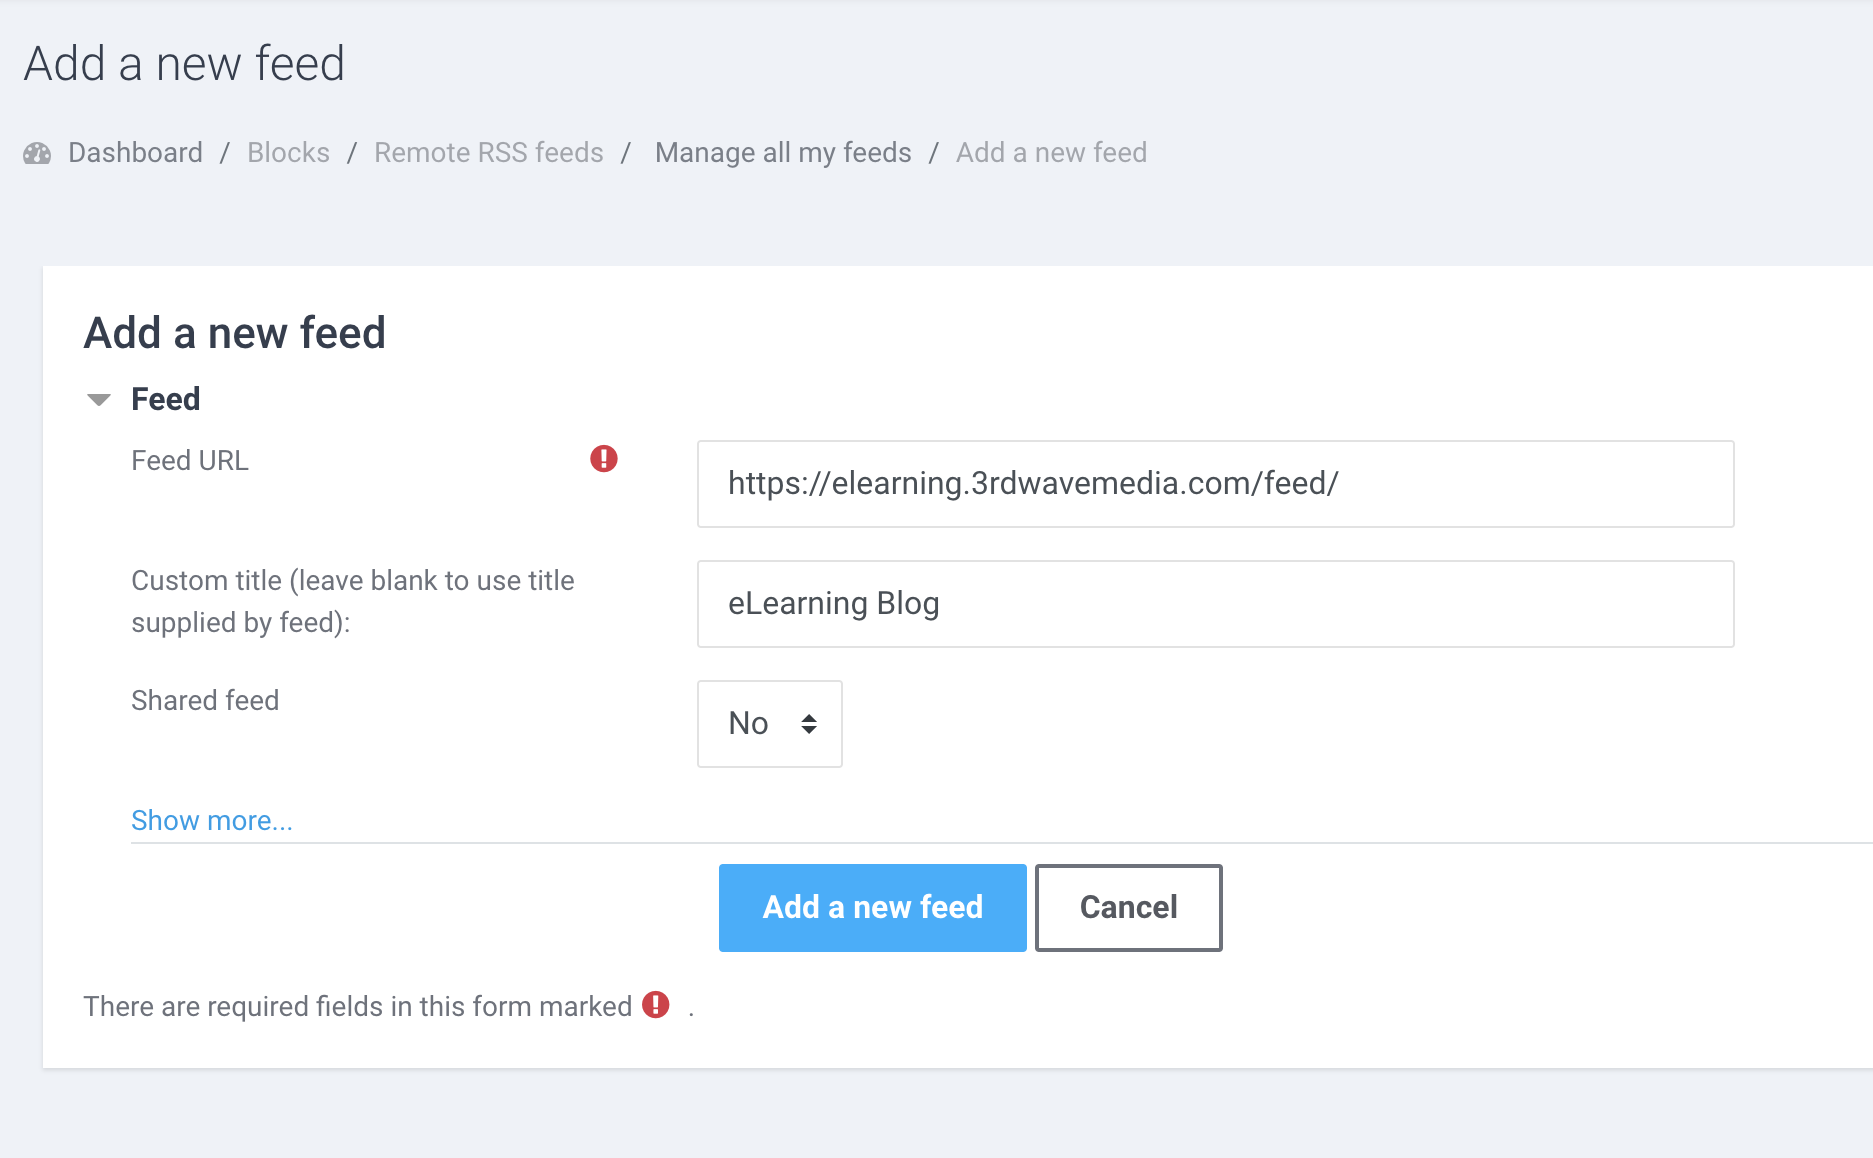 moodle-site-add-a-new-feed-settings